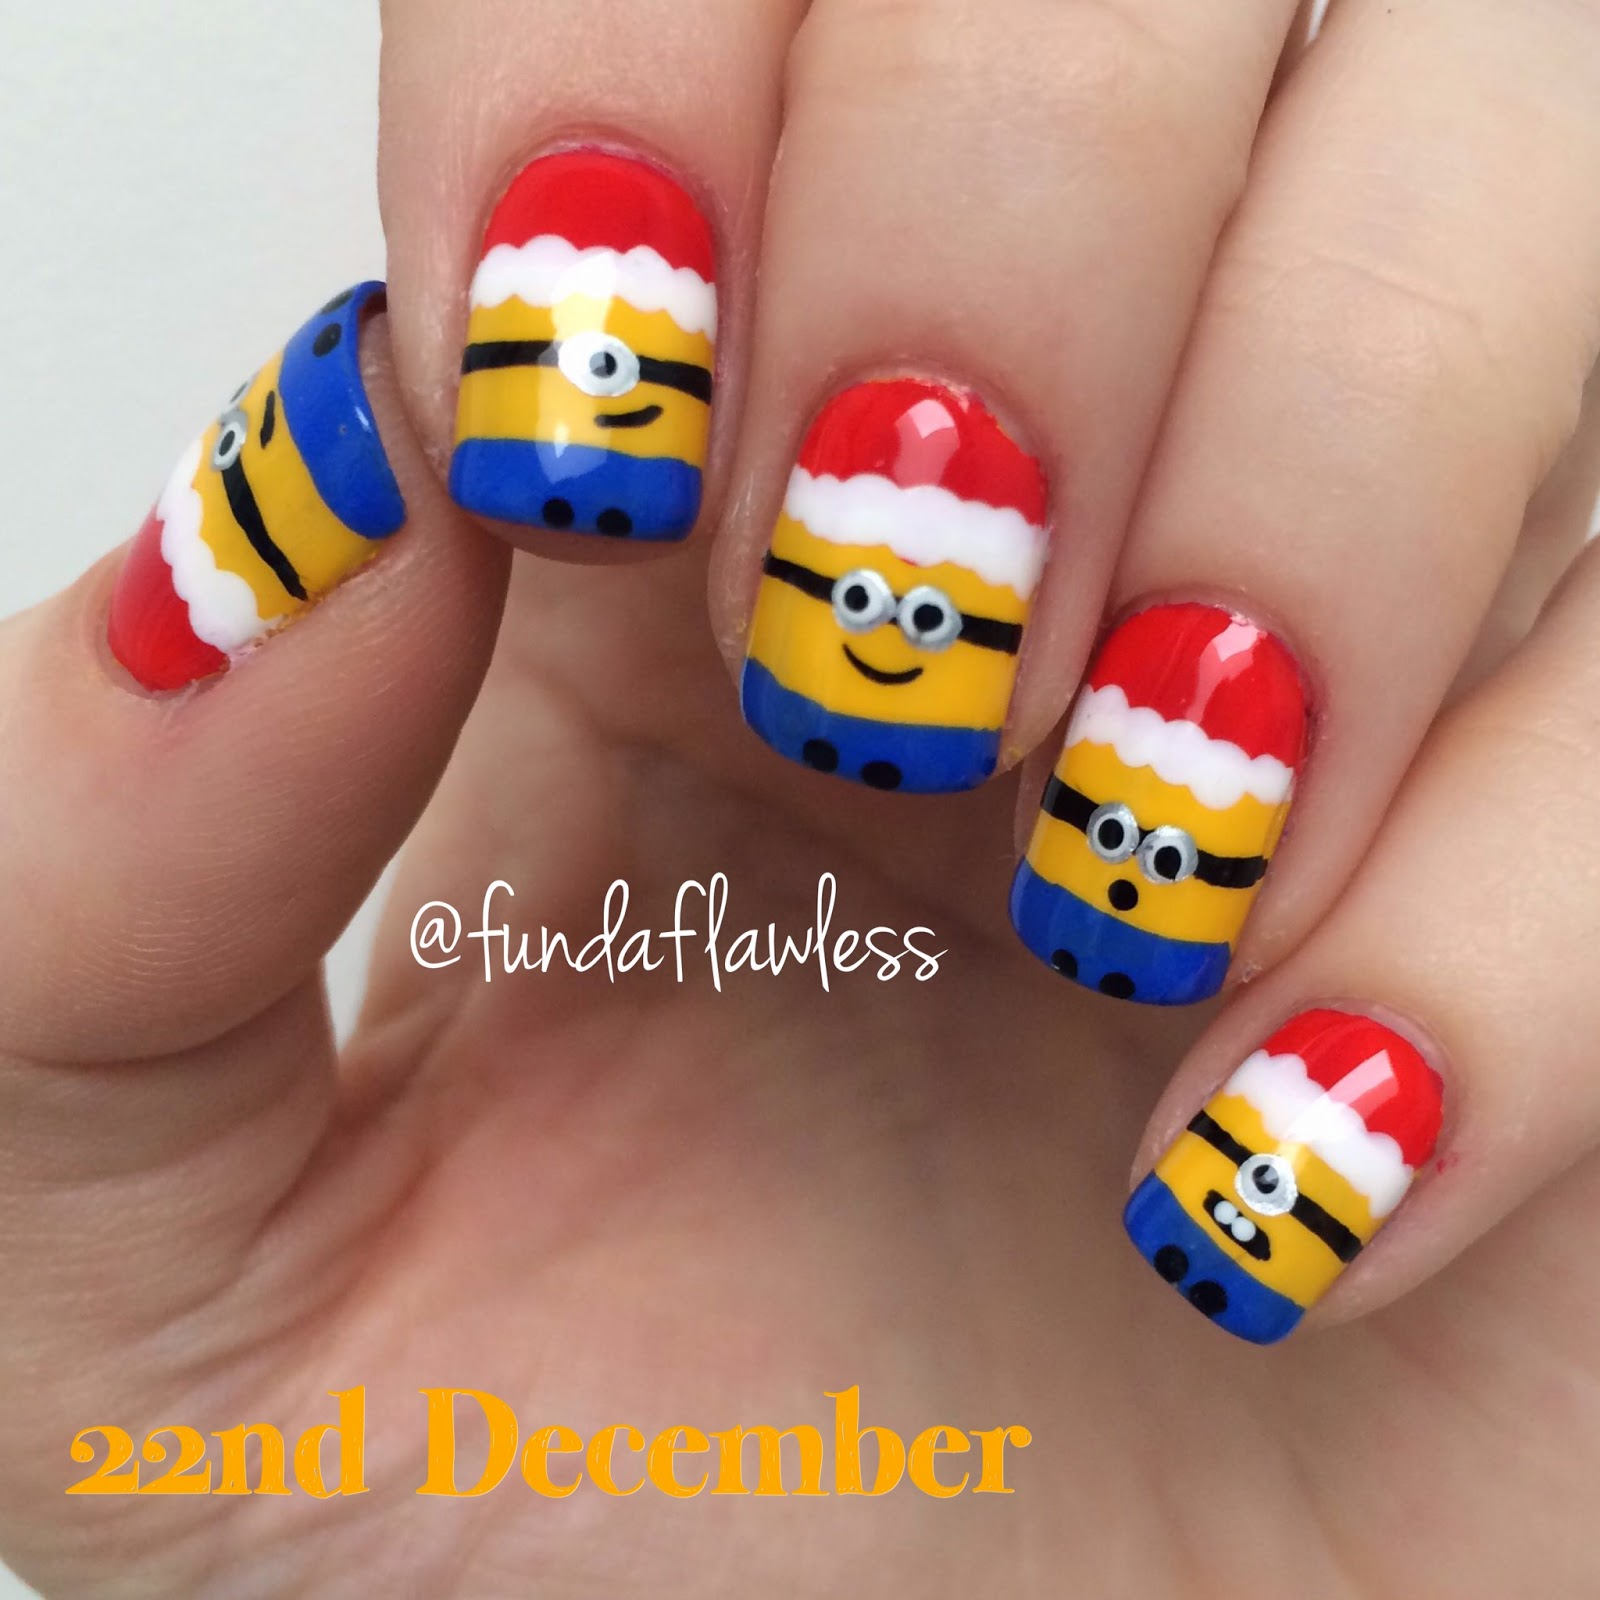 Christmas Santa Minions from Despicable Me nail art